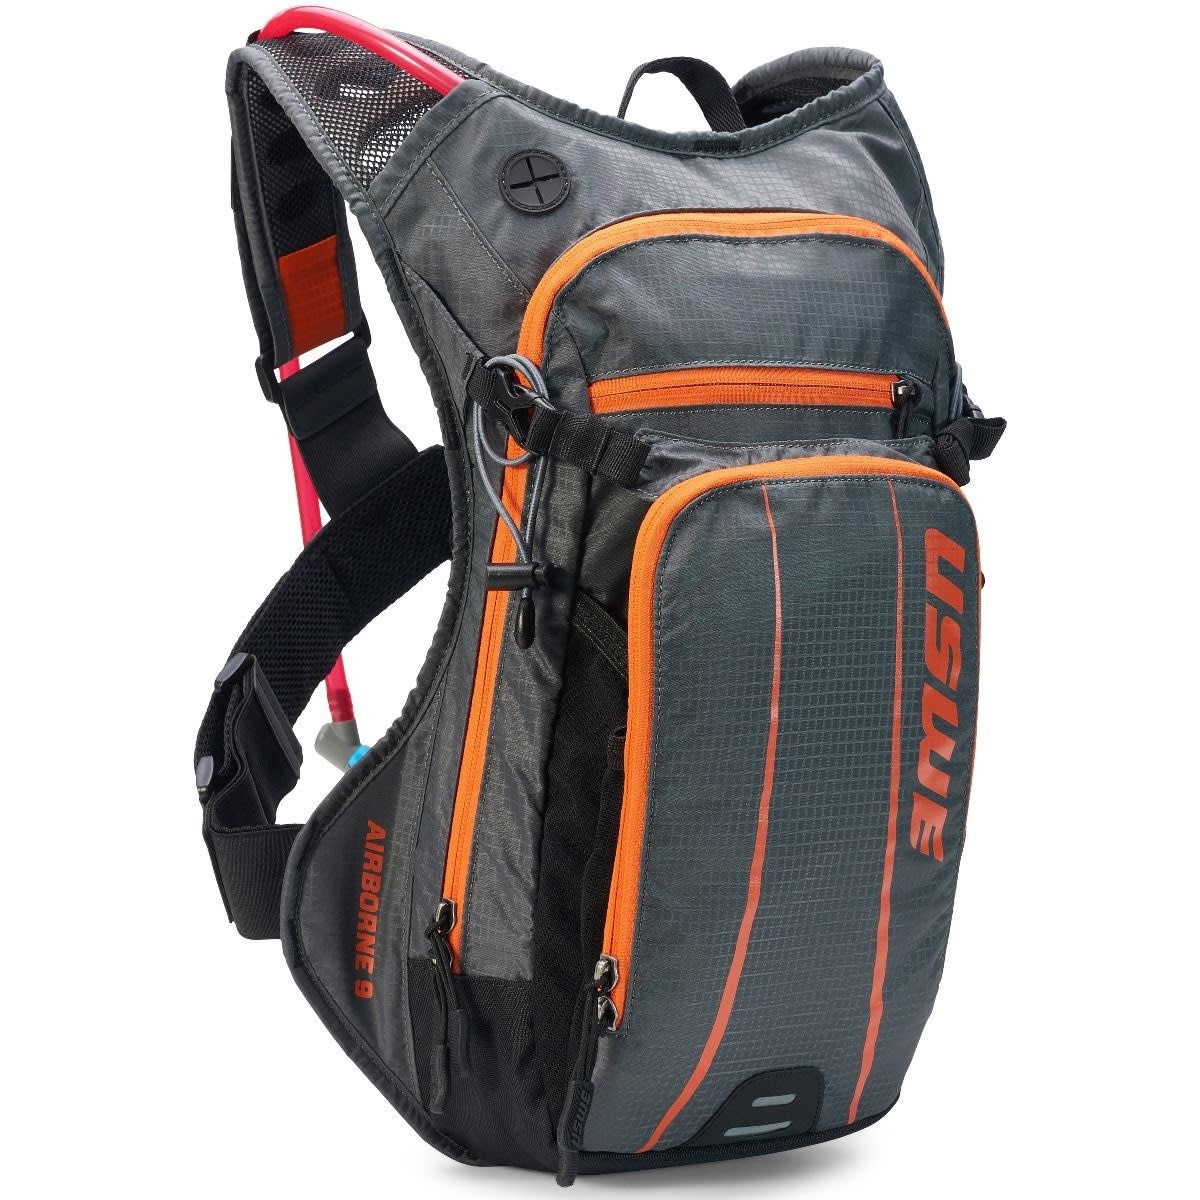 Airborne 9 Hydration Pack